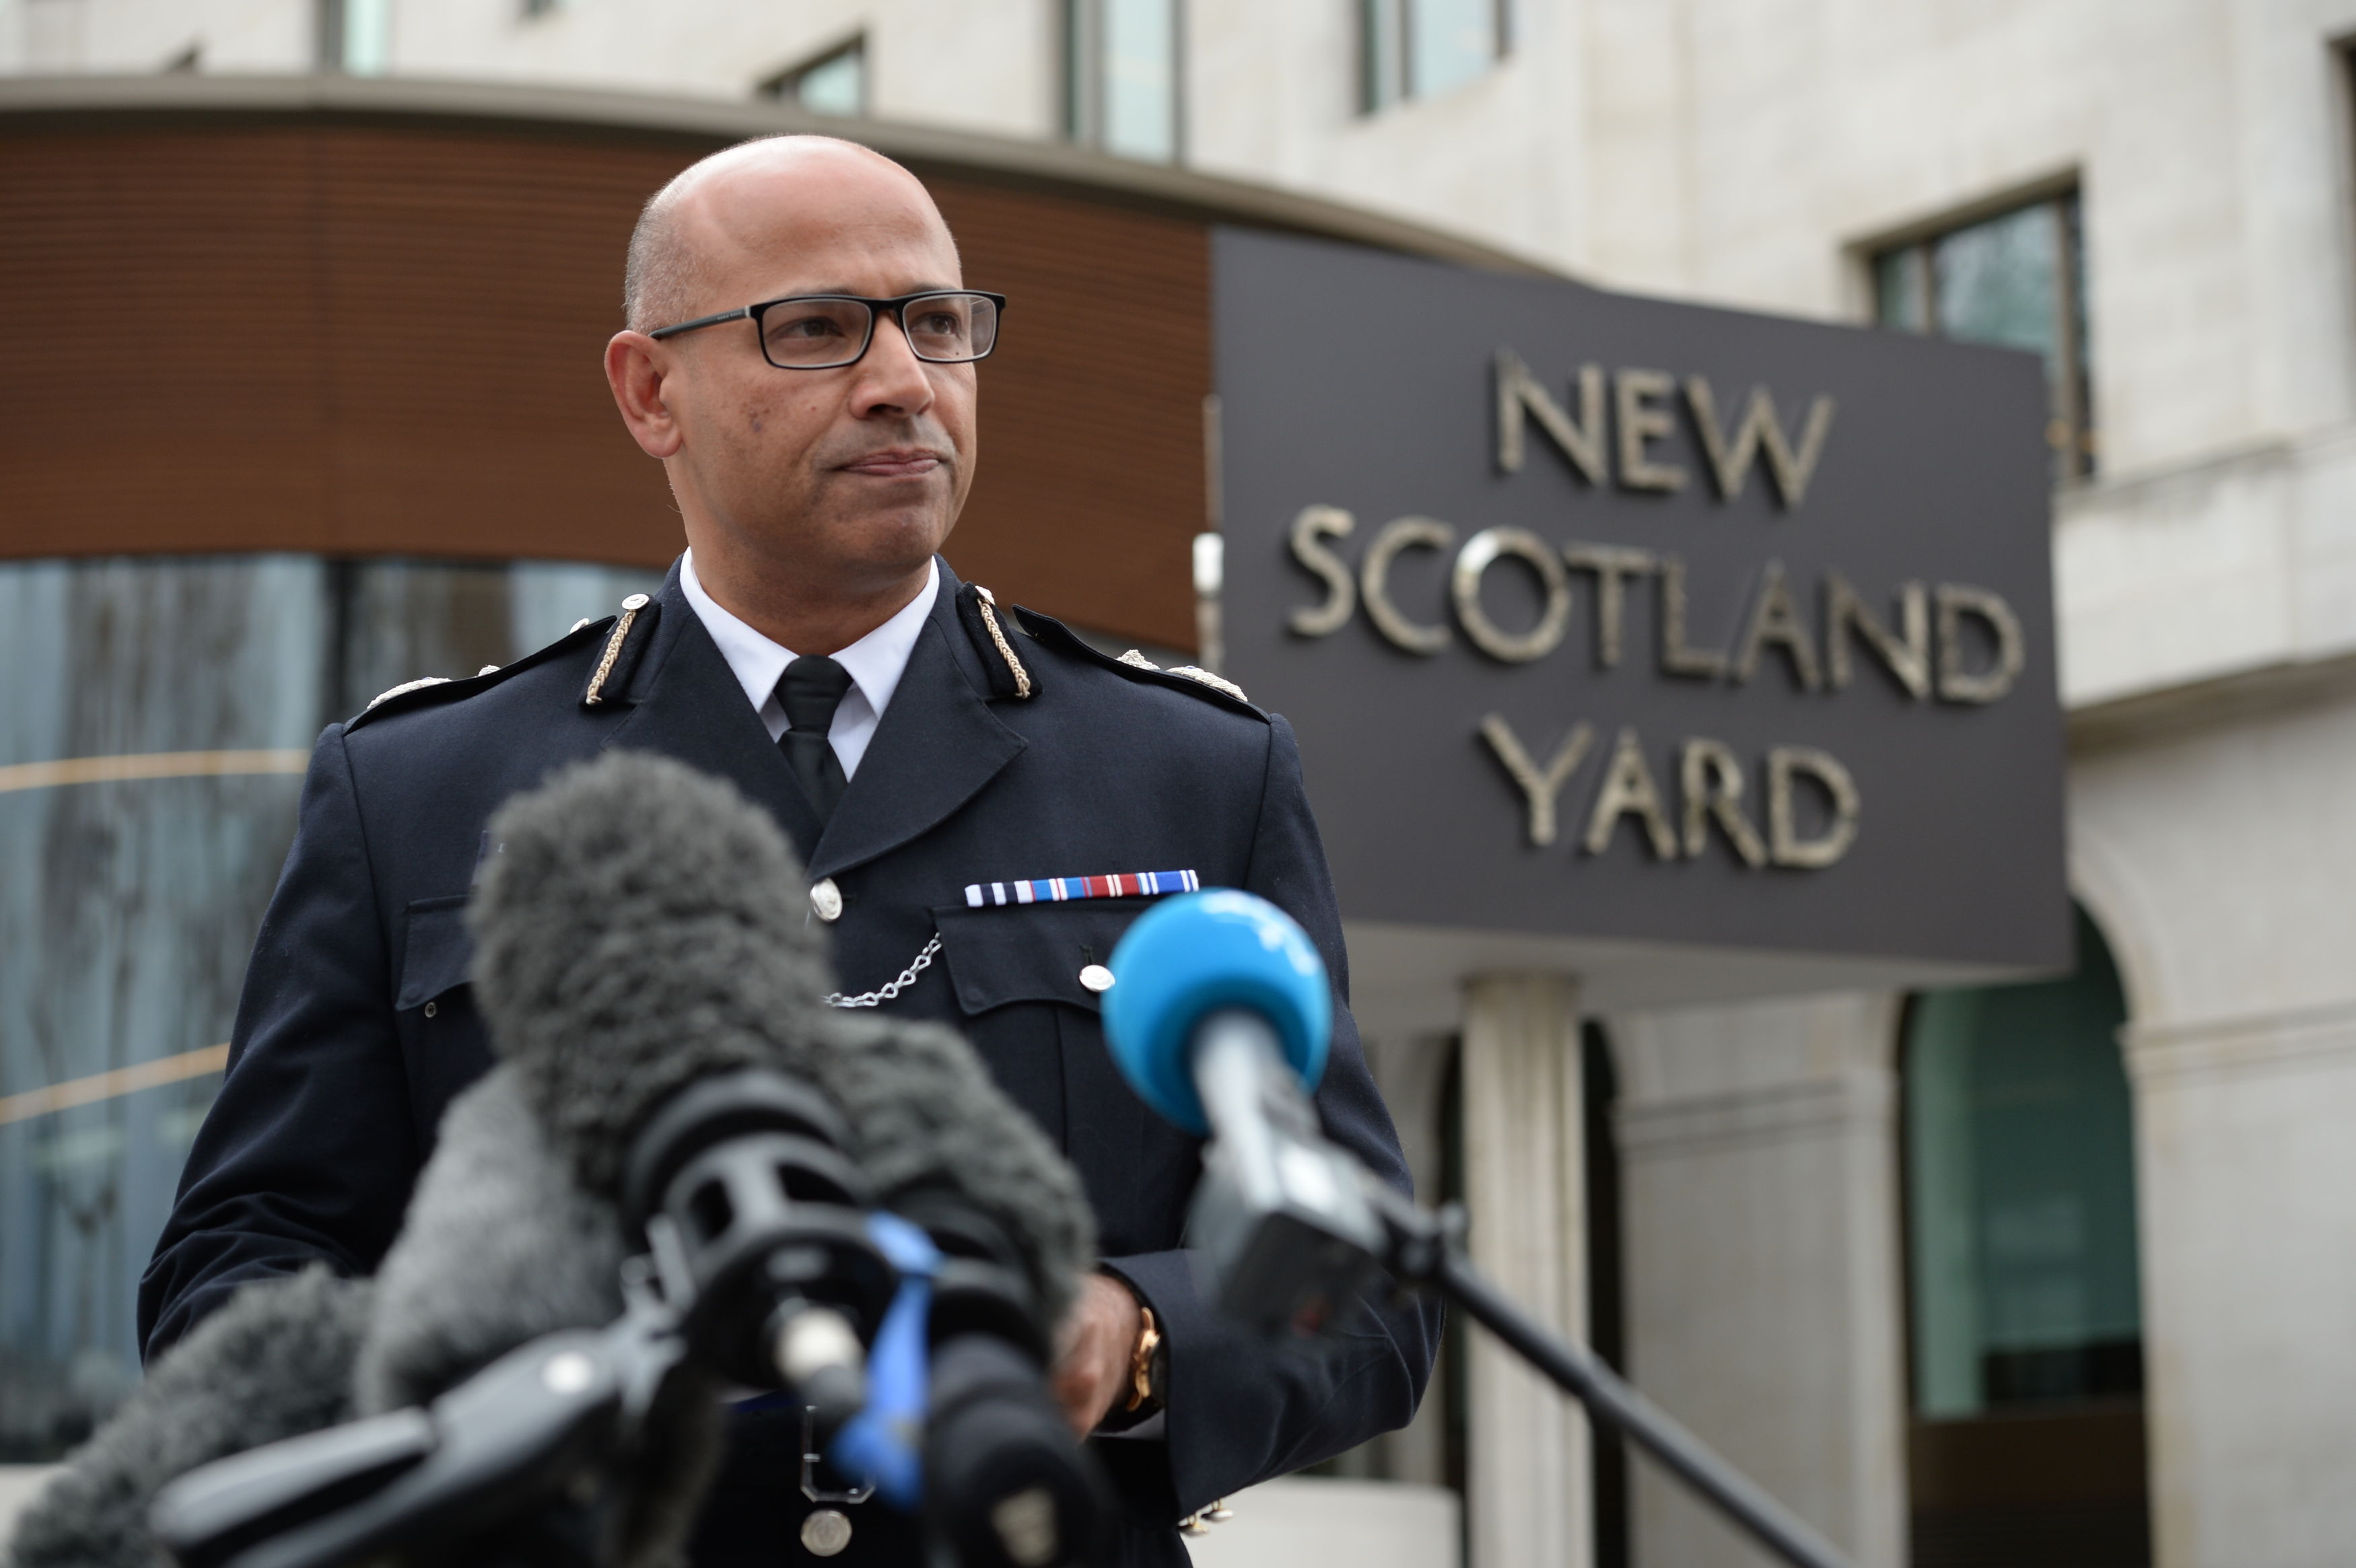 Head of counter-terrorism policing Neil Basu gives an update at Scotland Yard (Kirsty O'Connor/PA)